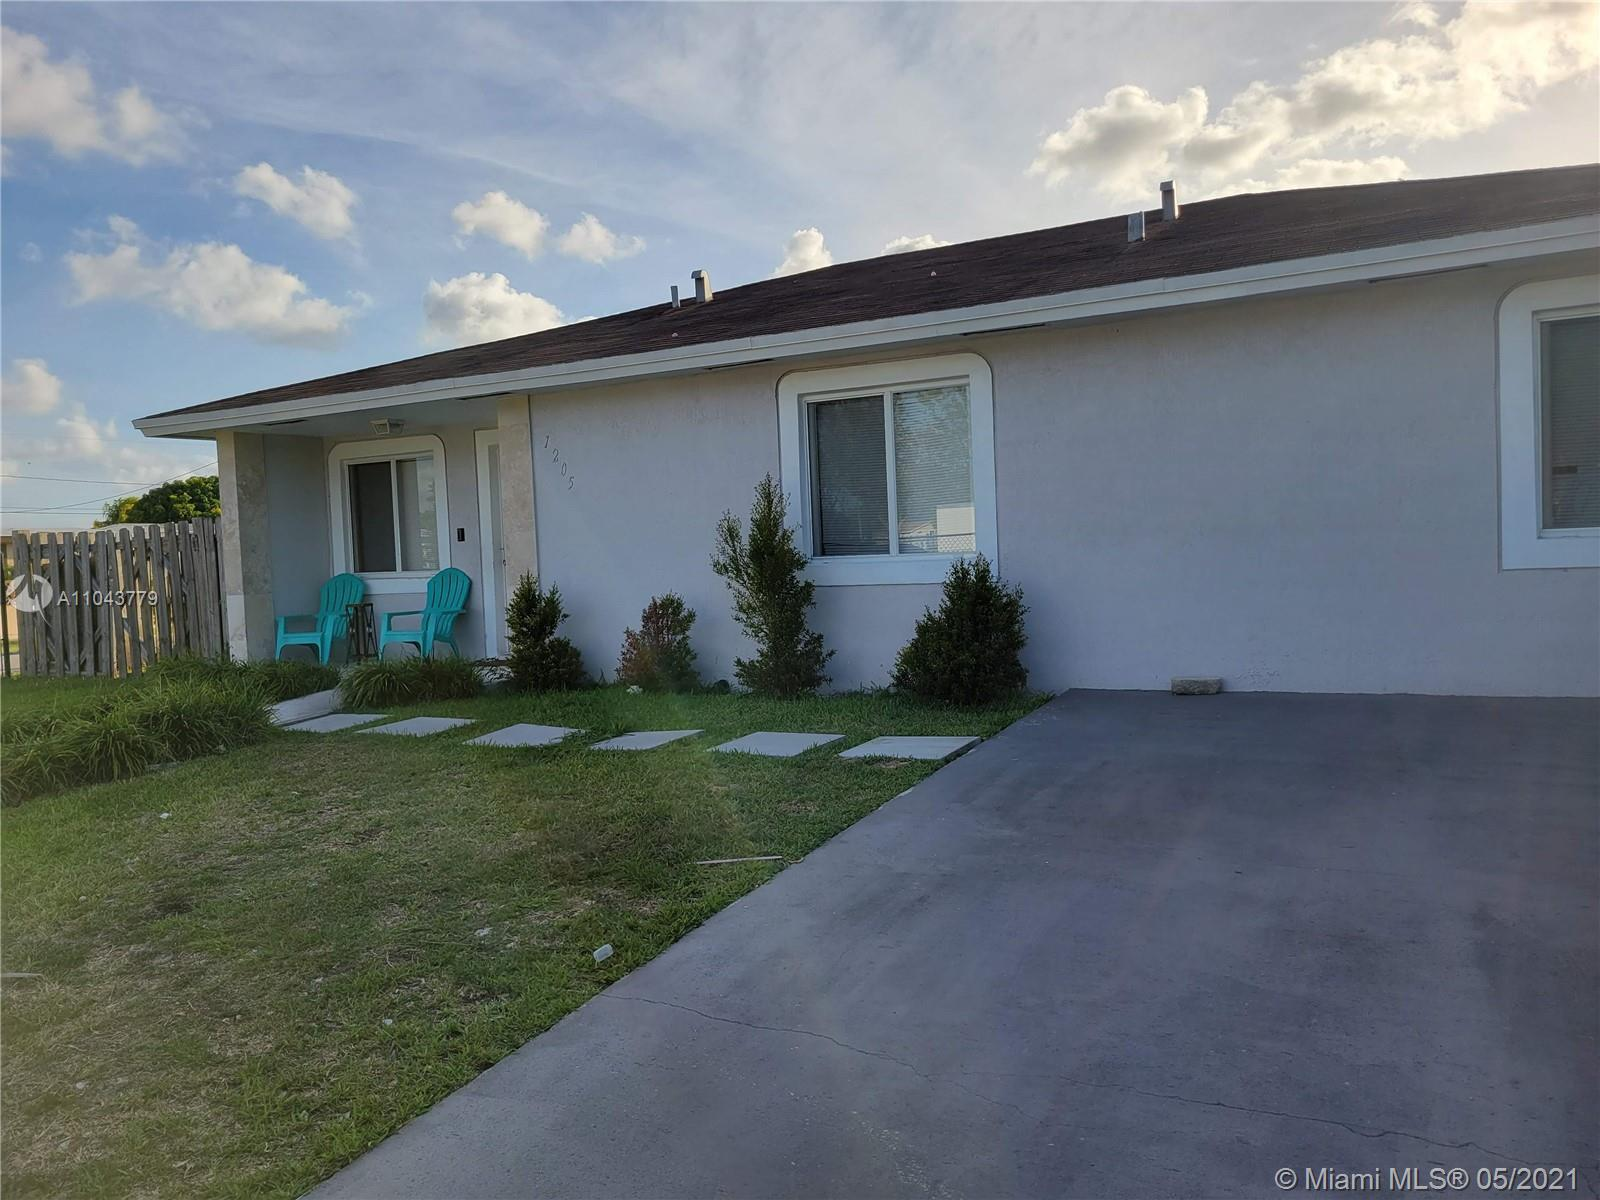 Large SFH with 4 bedrooms, 2 baths and a vast corner lot! This home boasting with a large floor plan, new kitchen, concrete epoxy floors in the common areas. This is a must see!